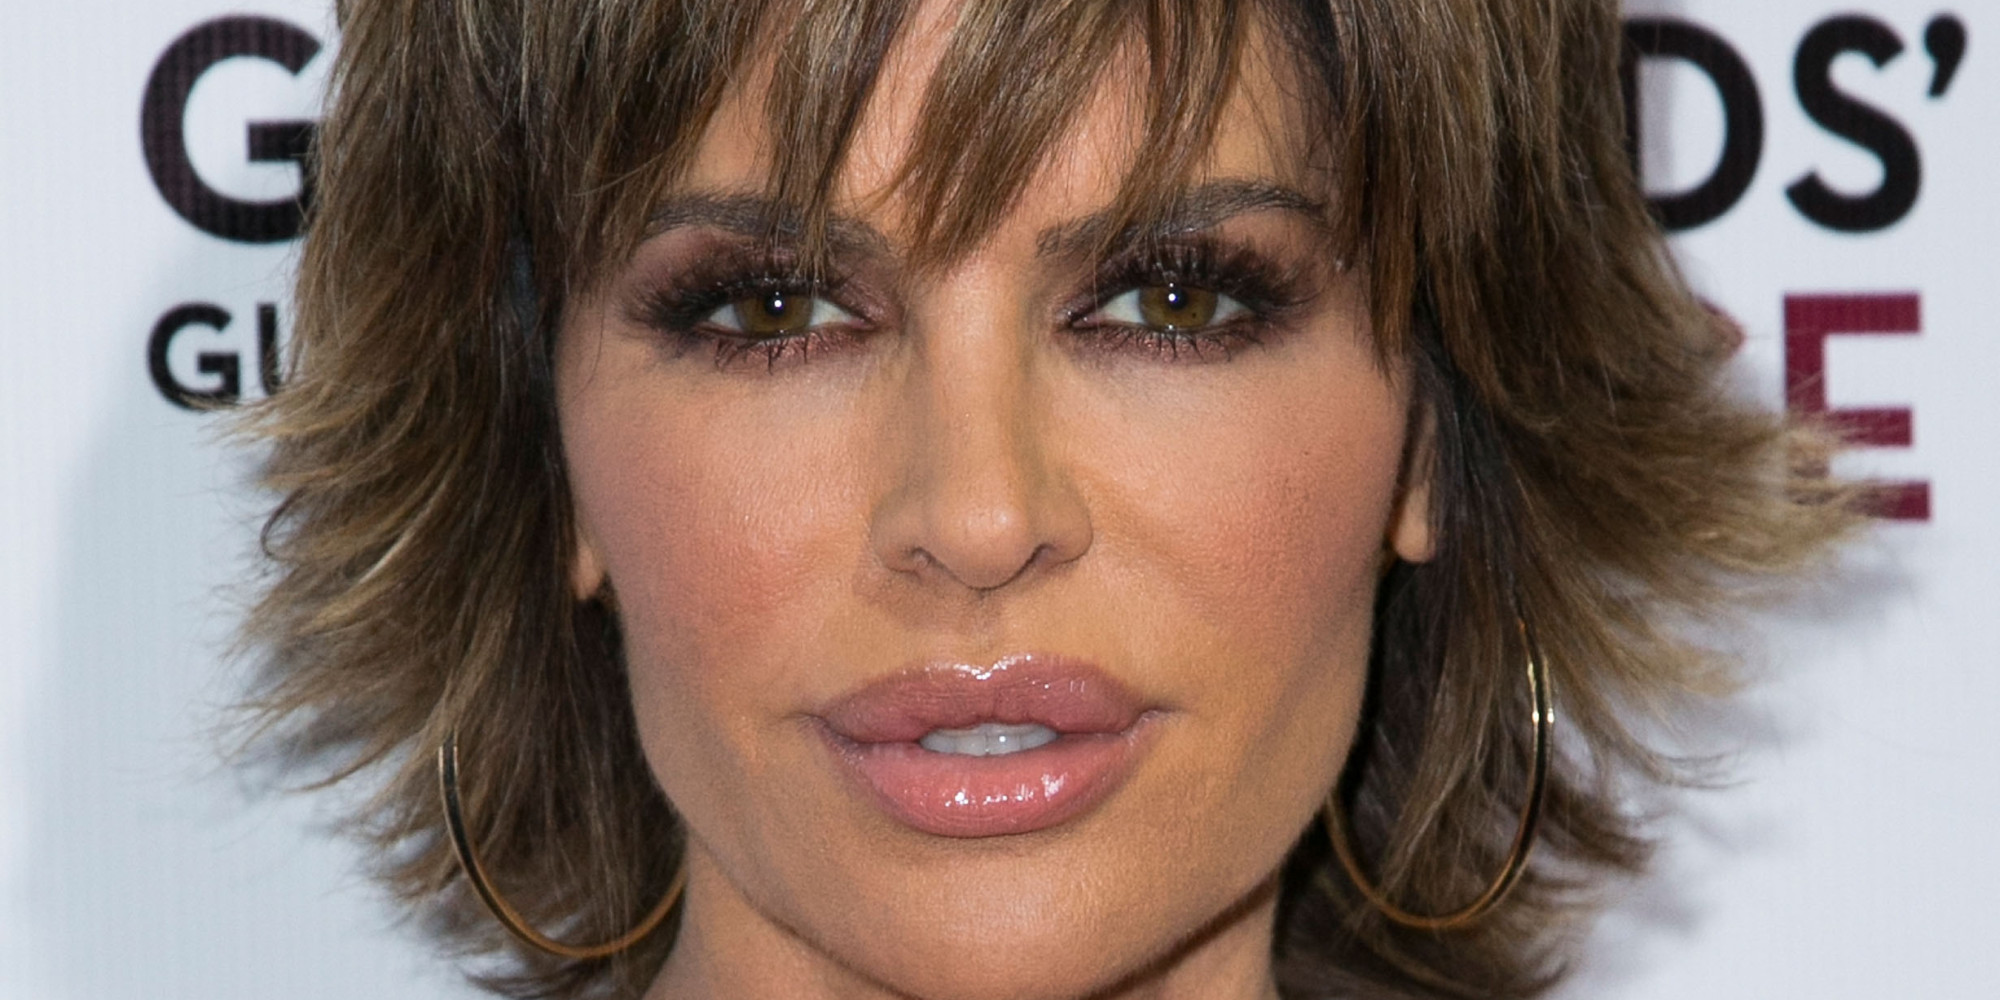 Lisa Rinna, Valerie Cherish And The Humiliating Task Of